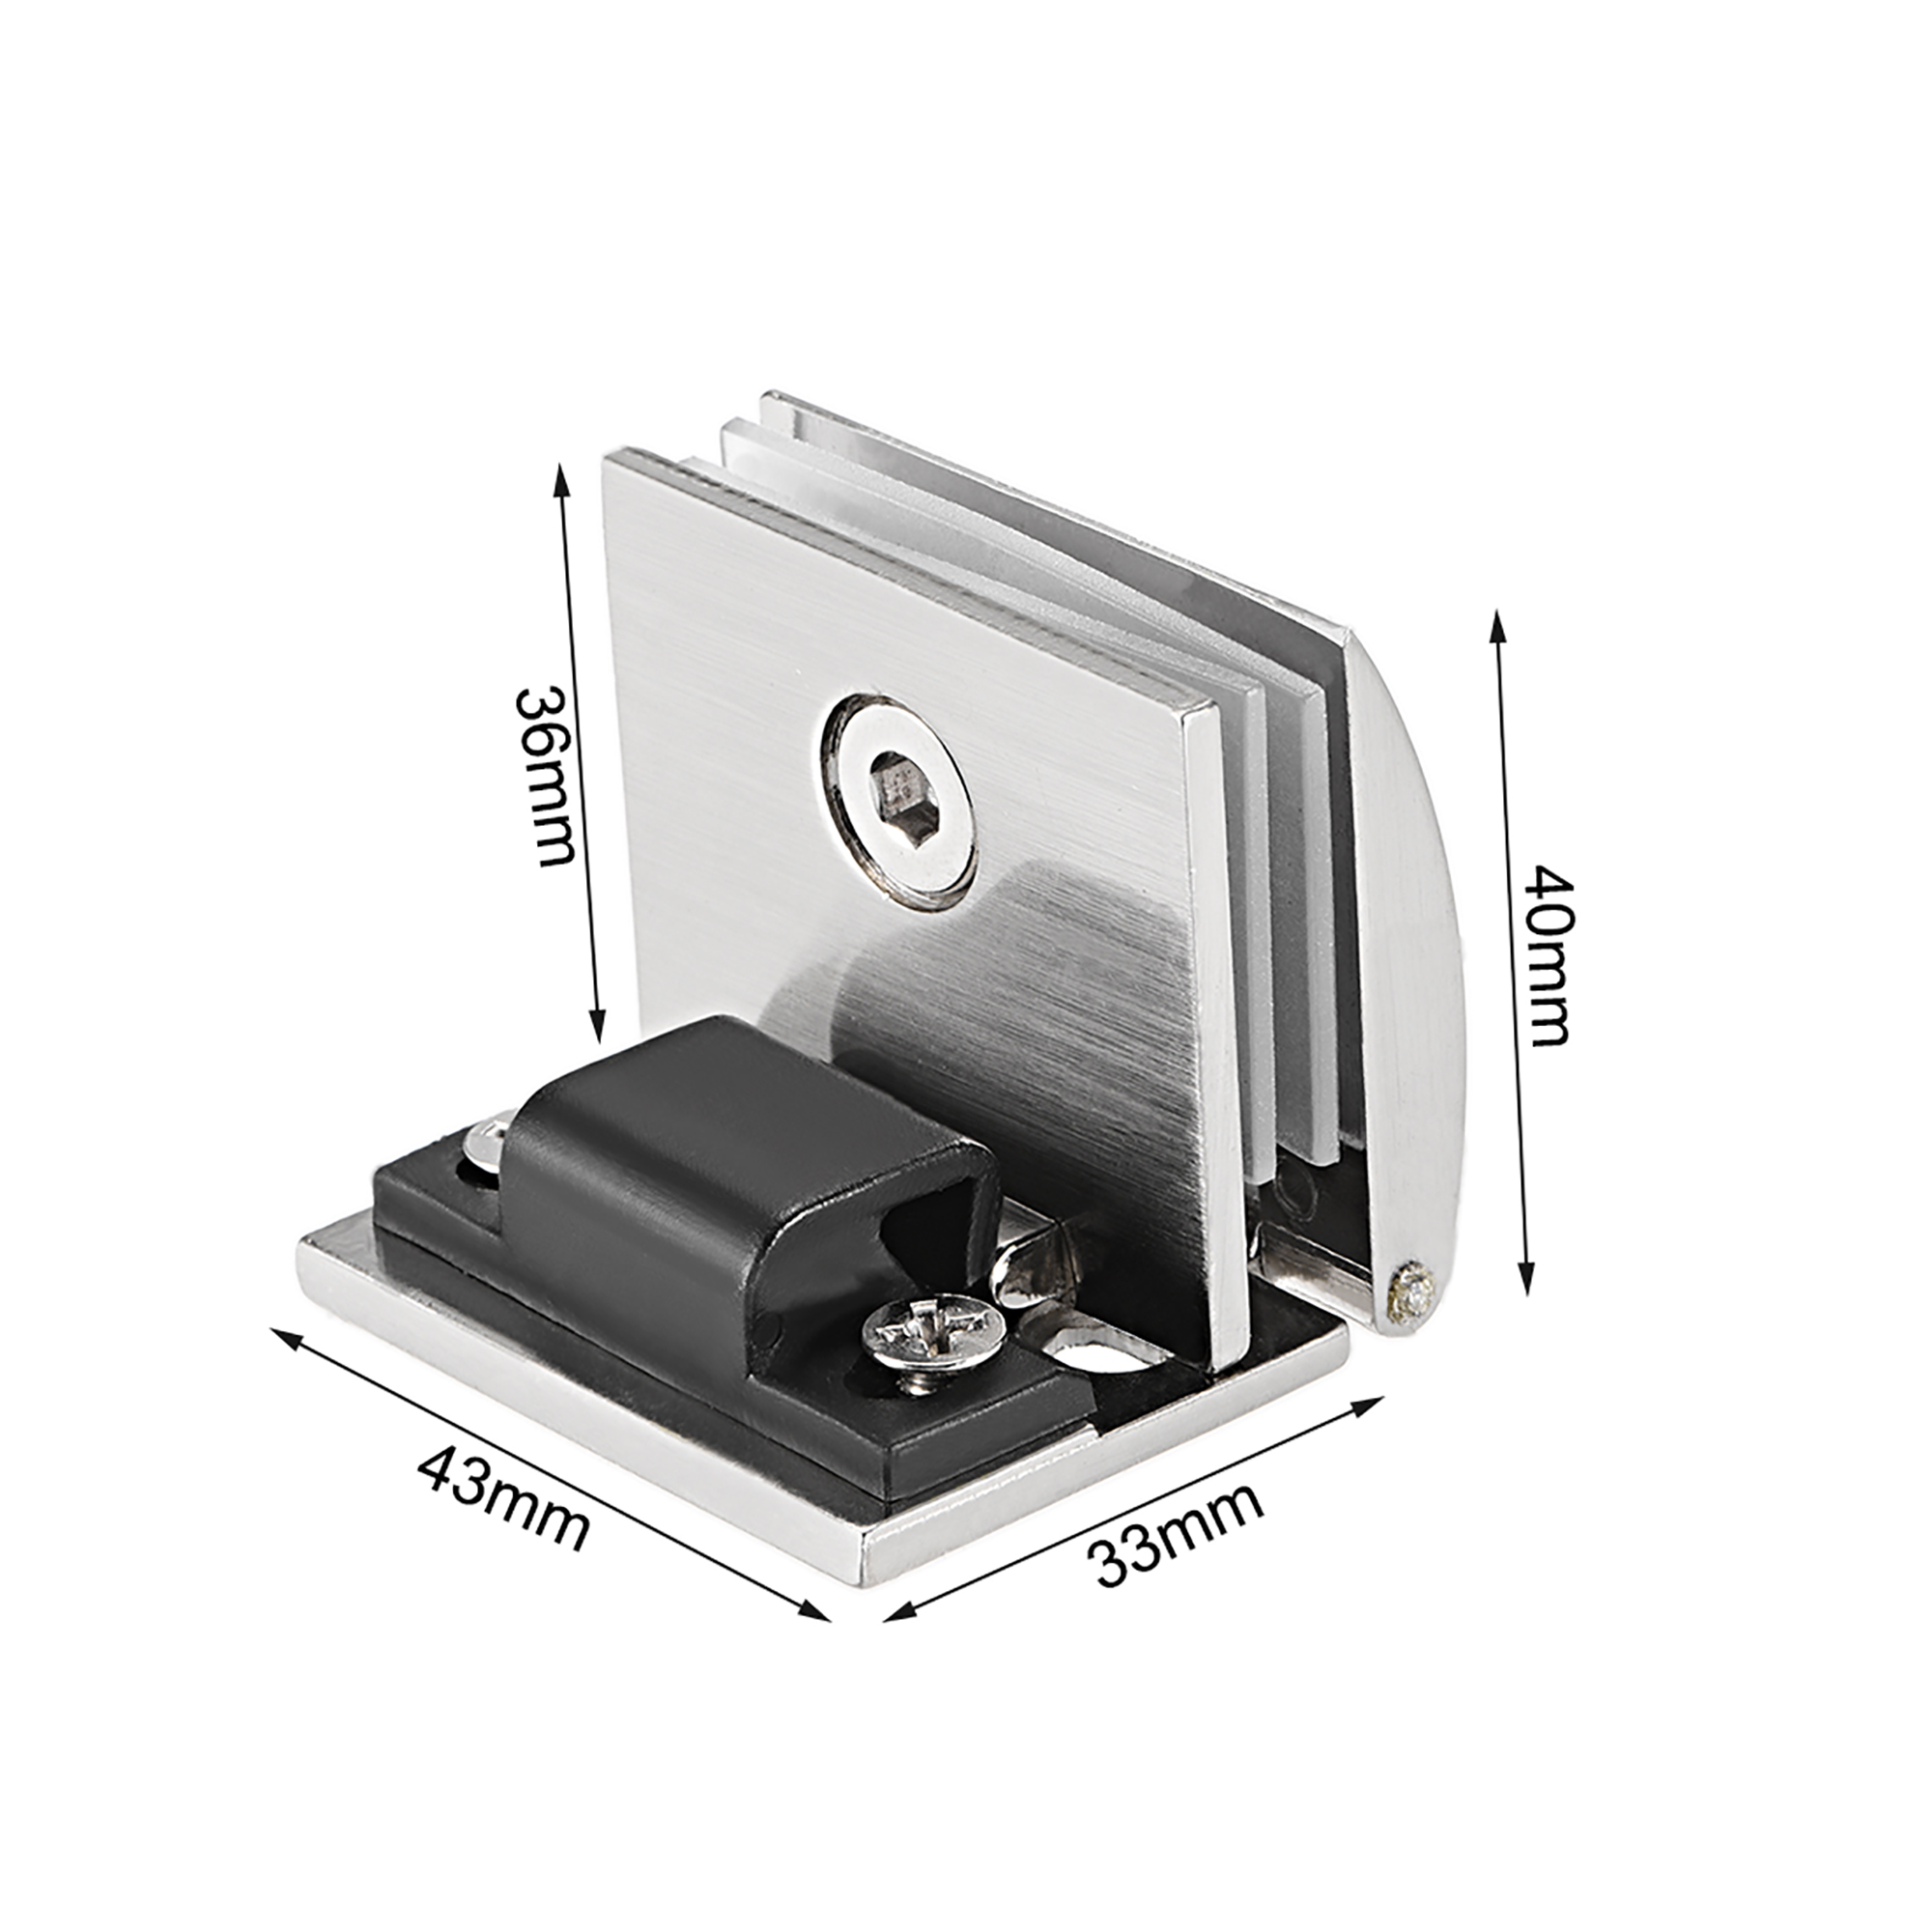 Uxcell Glass Hinge Showcase Door Hinge Glass Clamp for 5-8mm Thickness 2Pcs - image 1 of 5